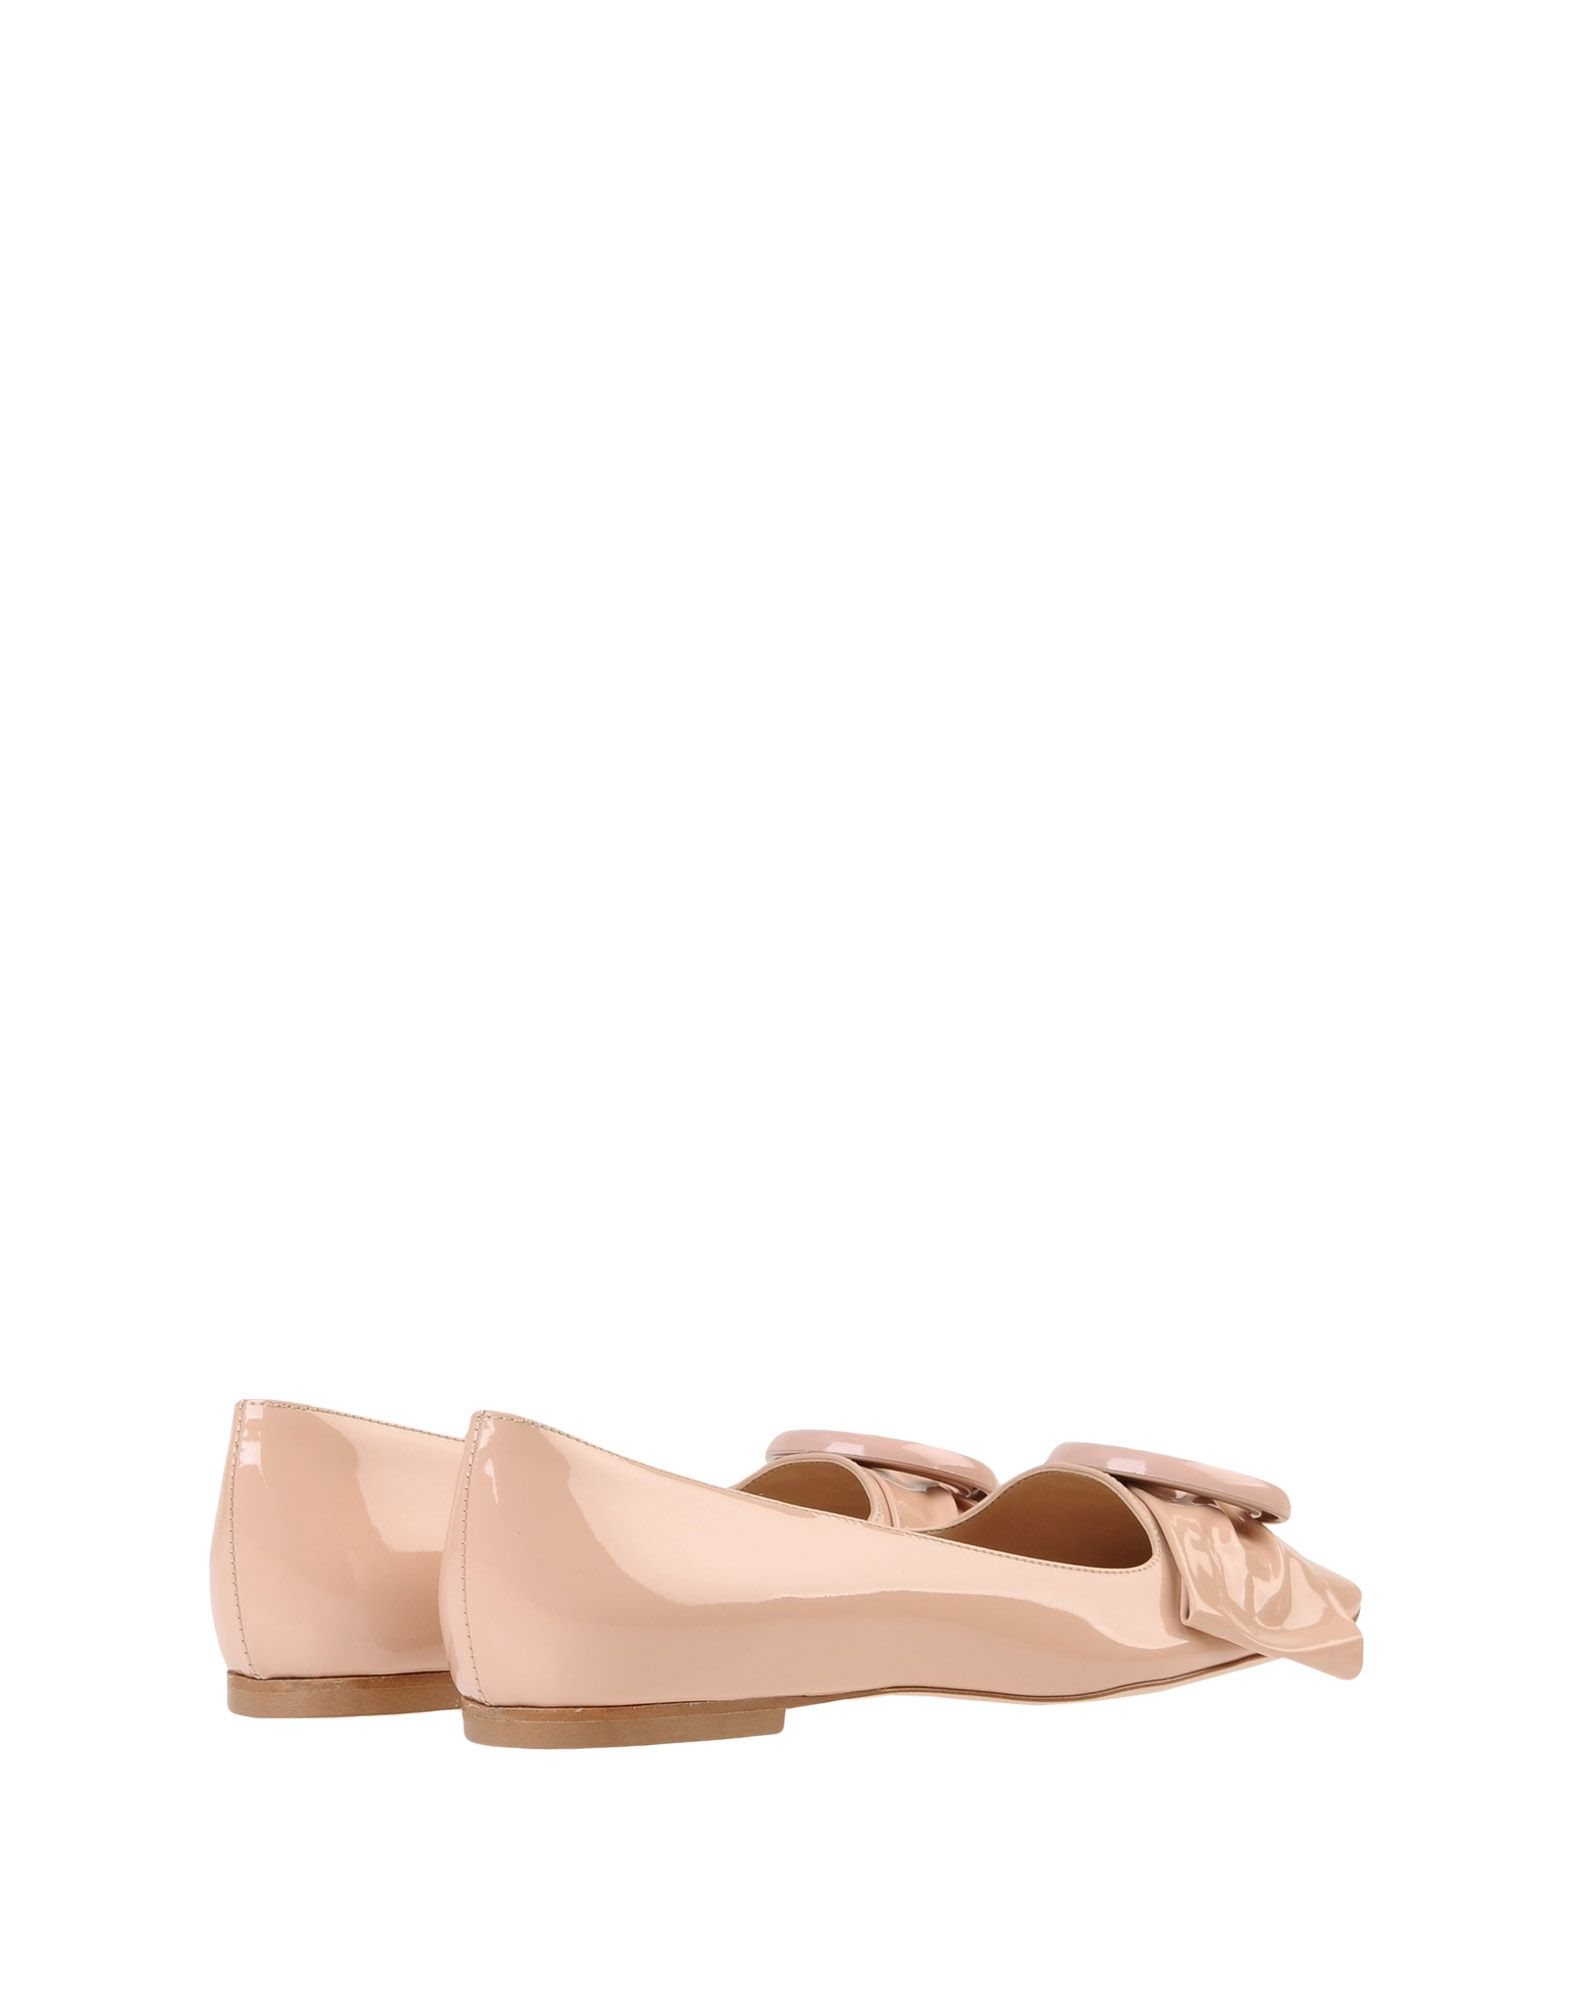 Bianca Di Ballet Flats - Women Bianca Di Ballet Flats Kingdom online on  United Kingdom Flats - 11452111NO 874c49